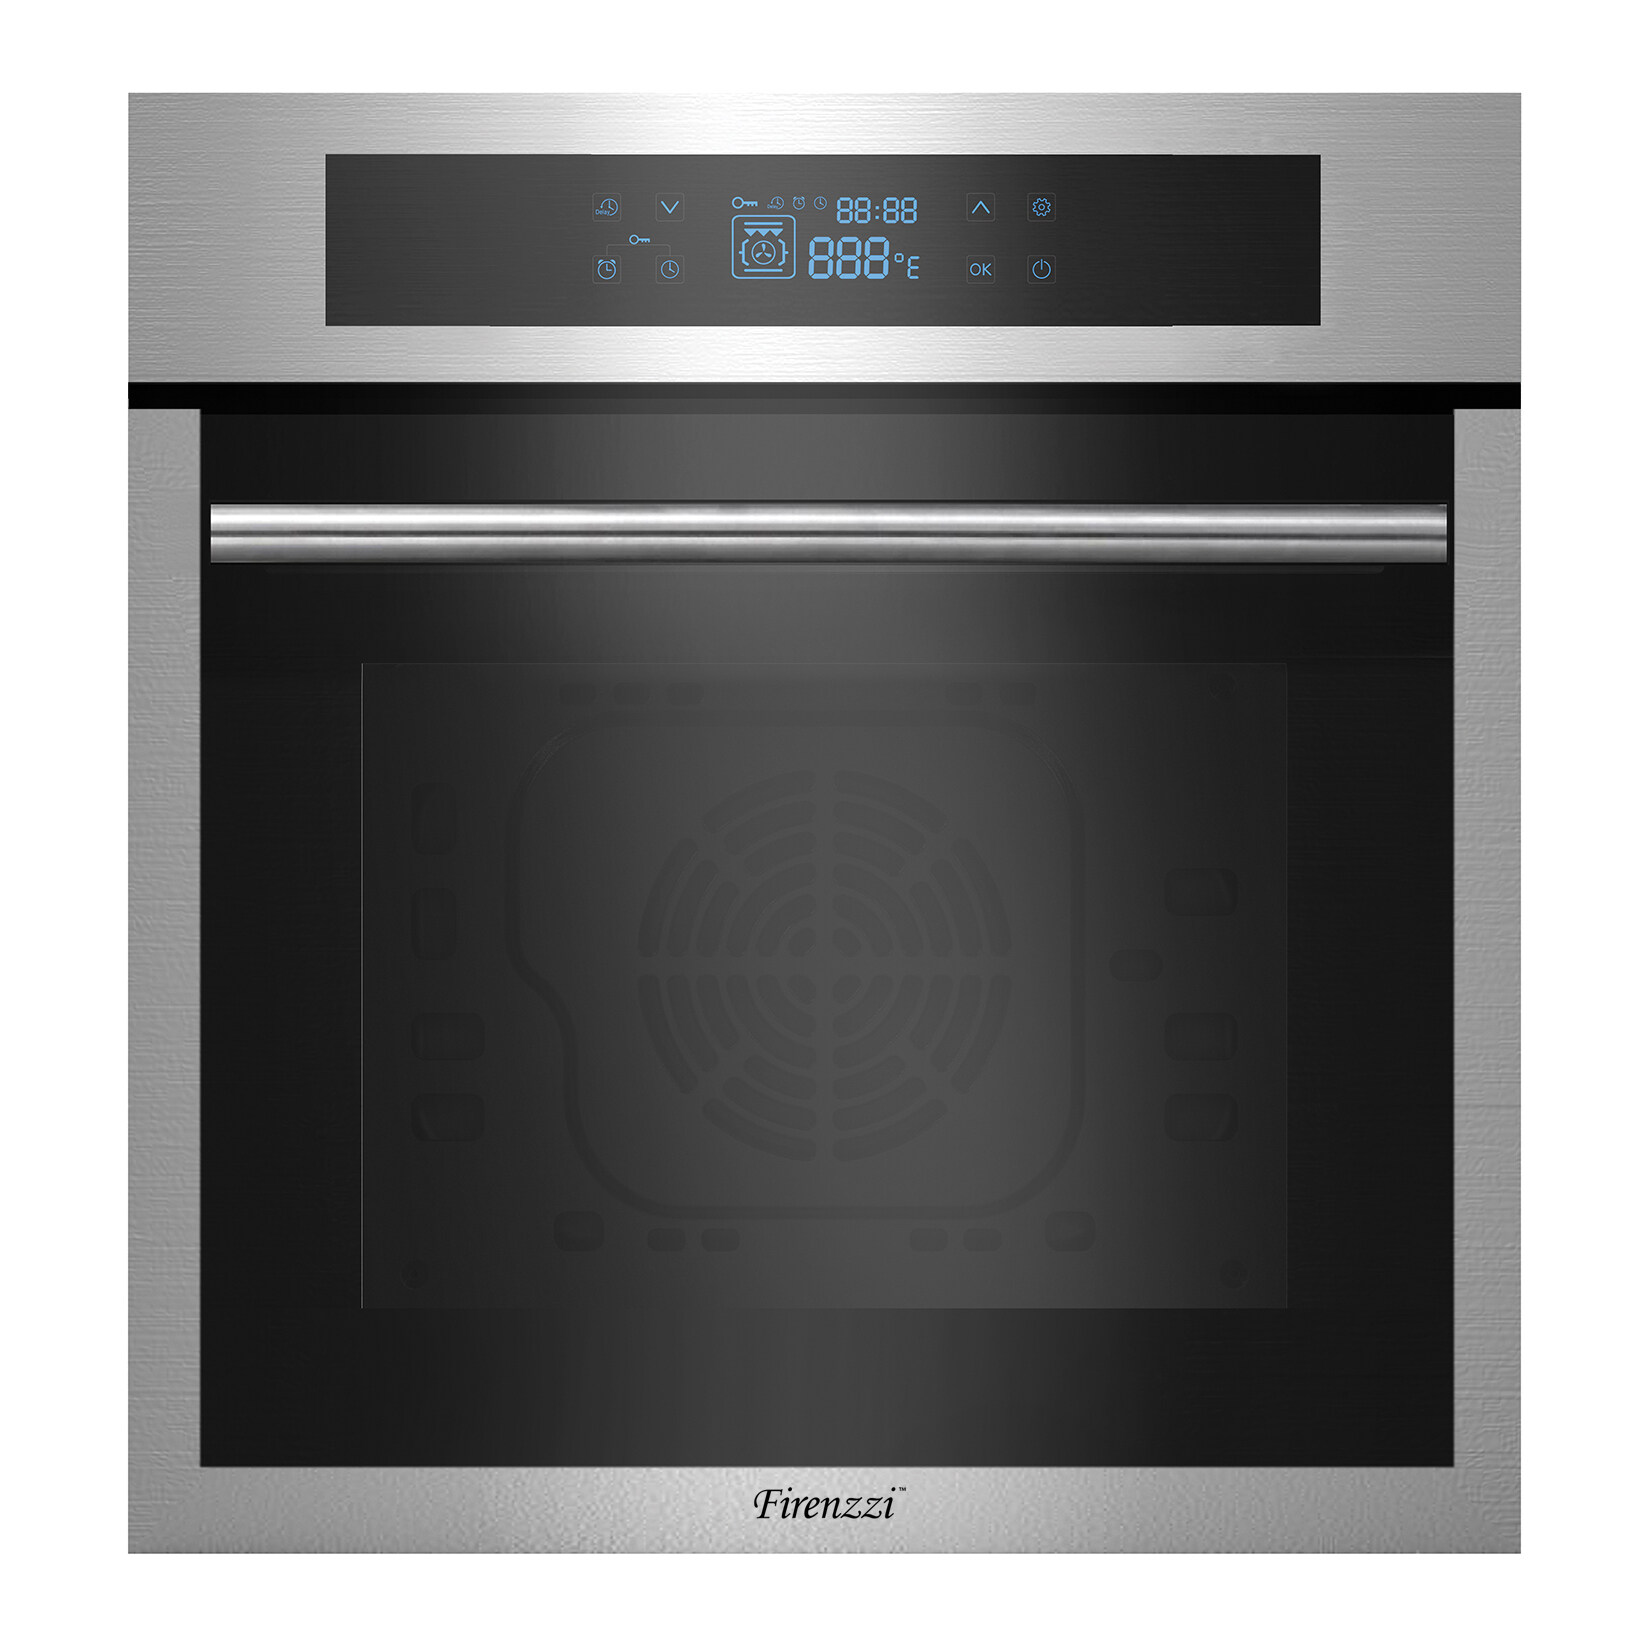 Firenzzi FBO-6199 XP Professional Built-in Oven with 1 Year Warranty (65 Litres & 10 Cooking Functions)